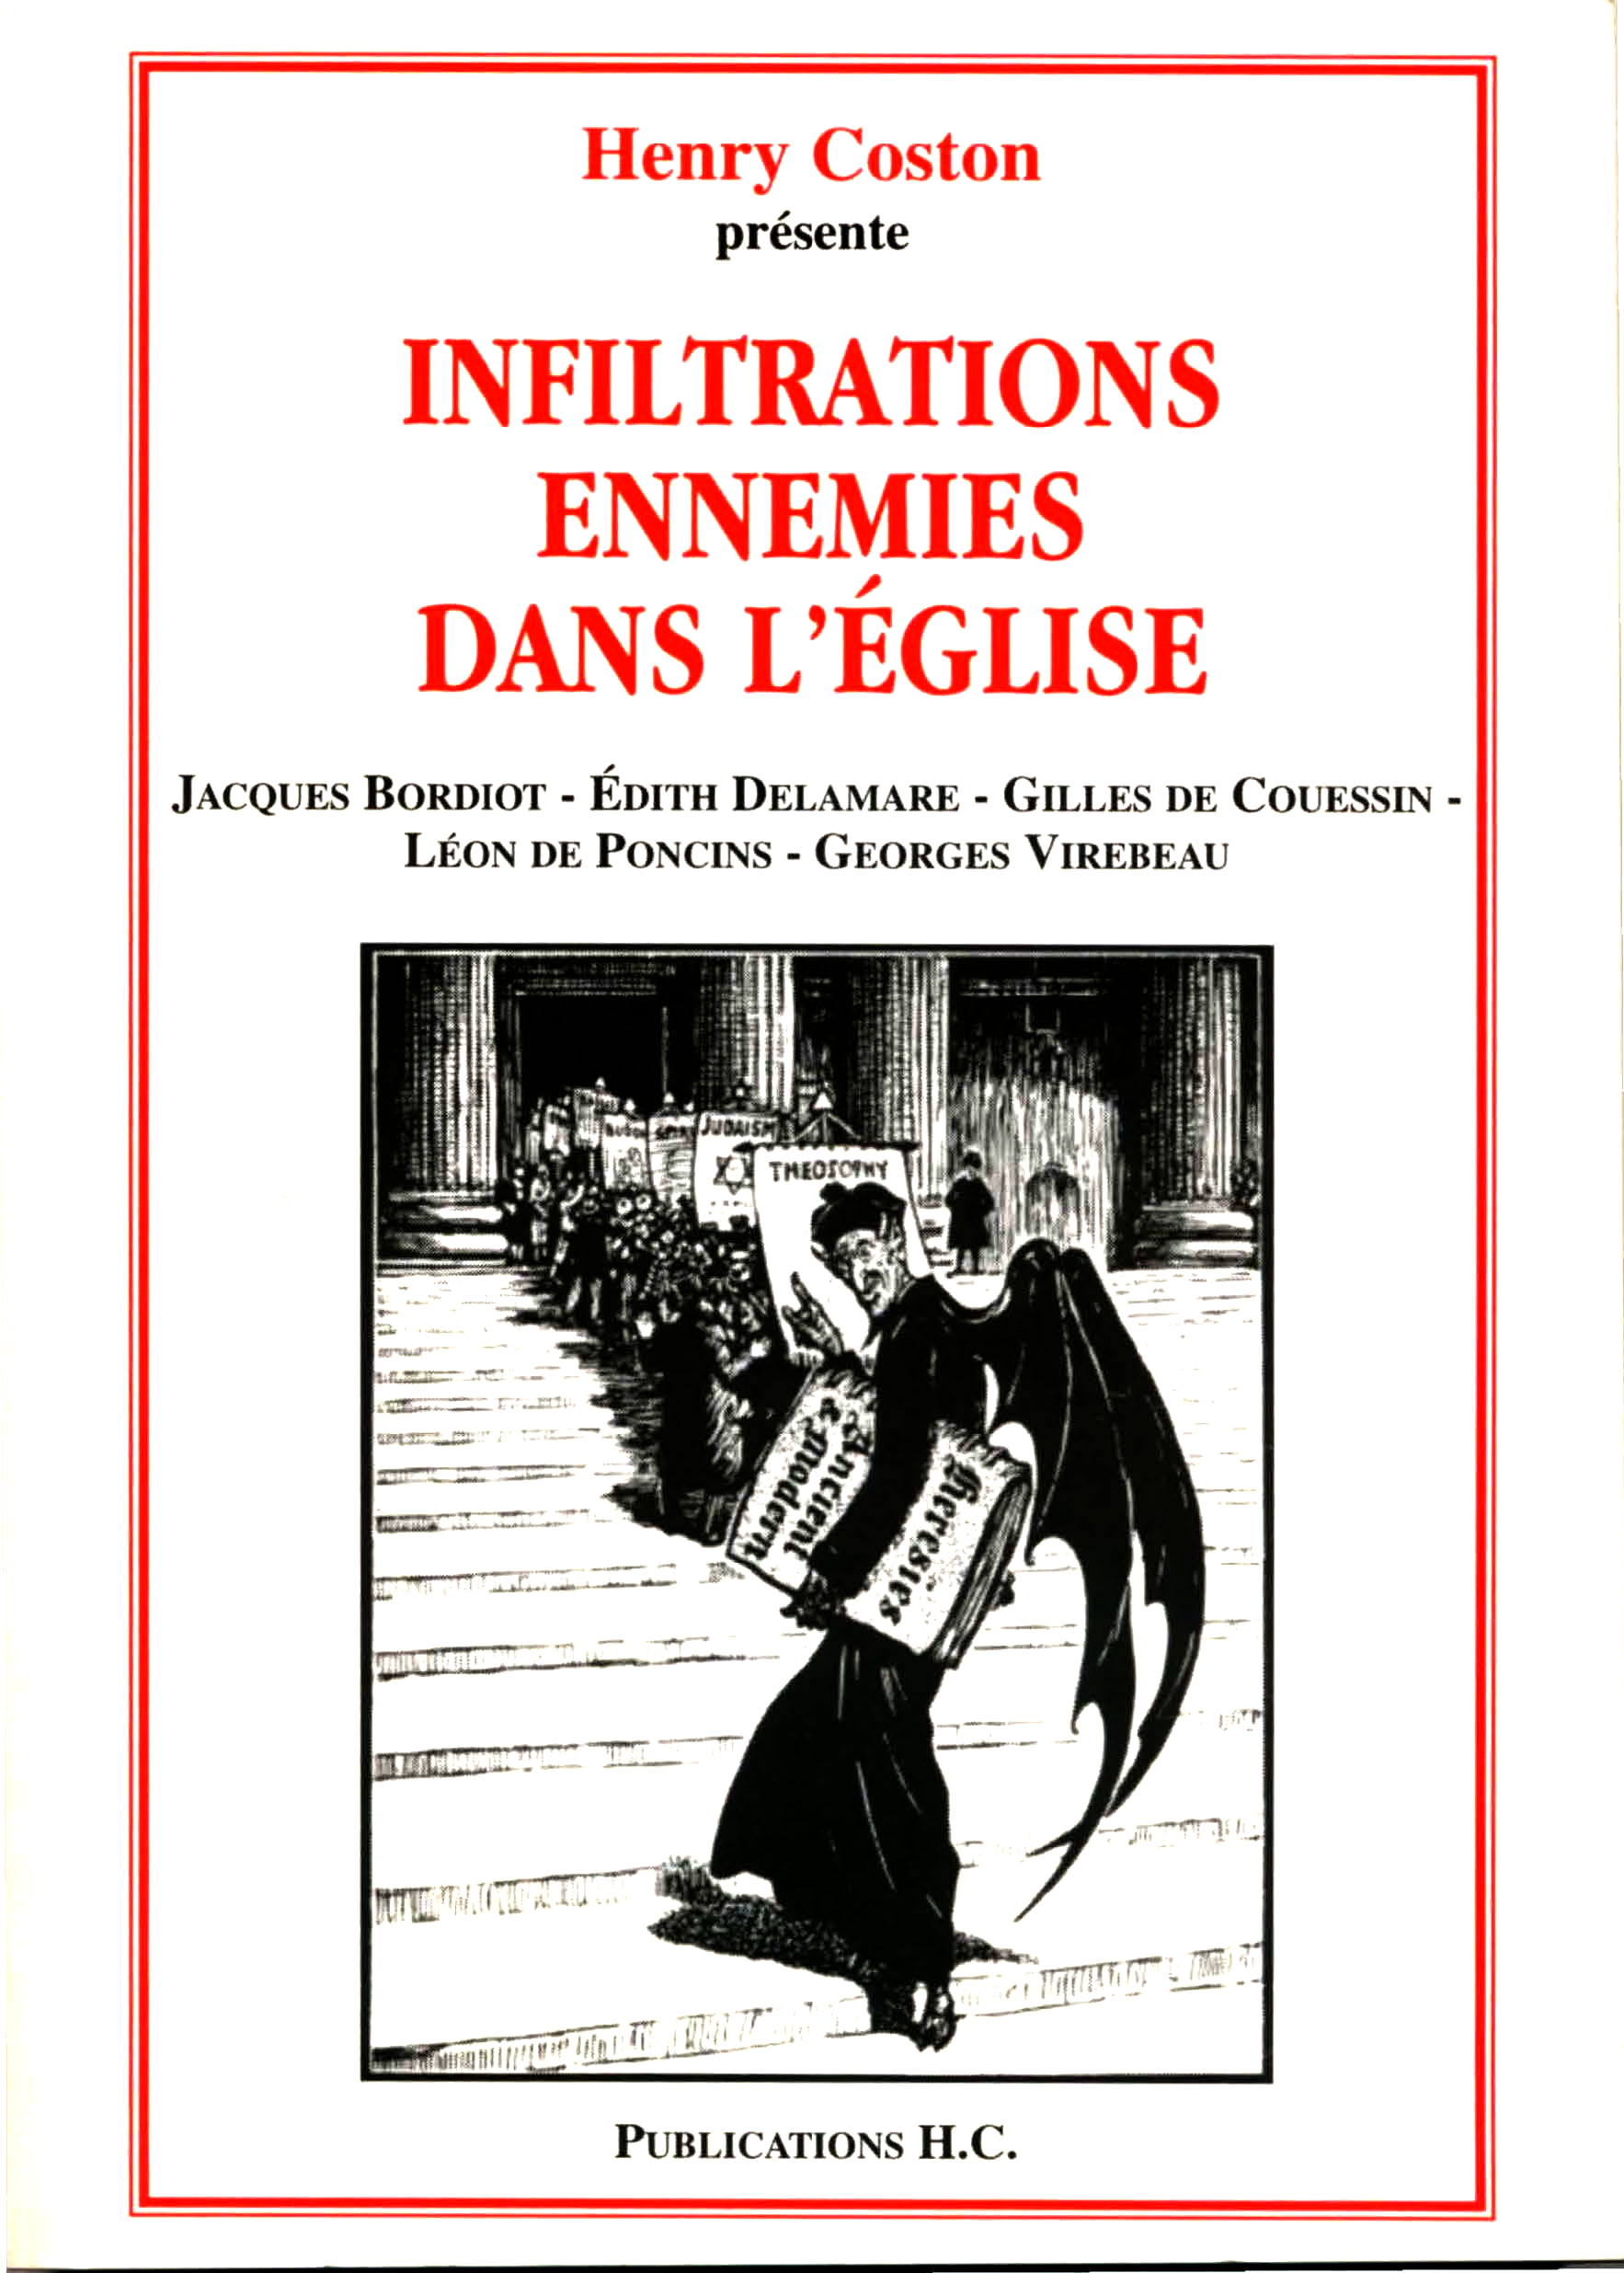 Coston_Henry_-_Infiltrations_ennemies_dans_l_Eglise.jpg